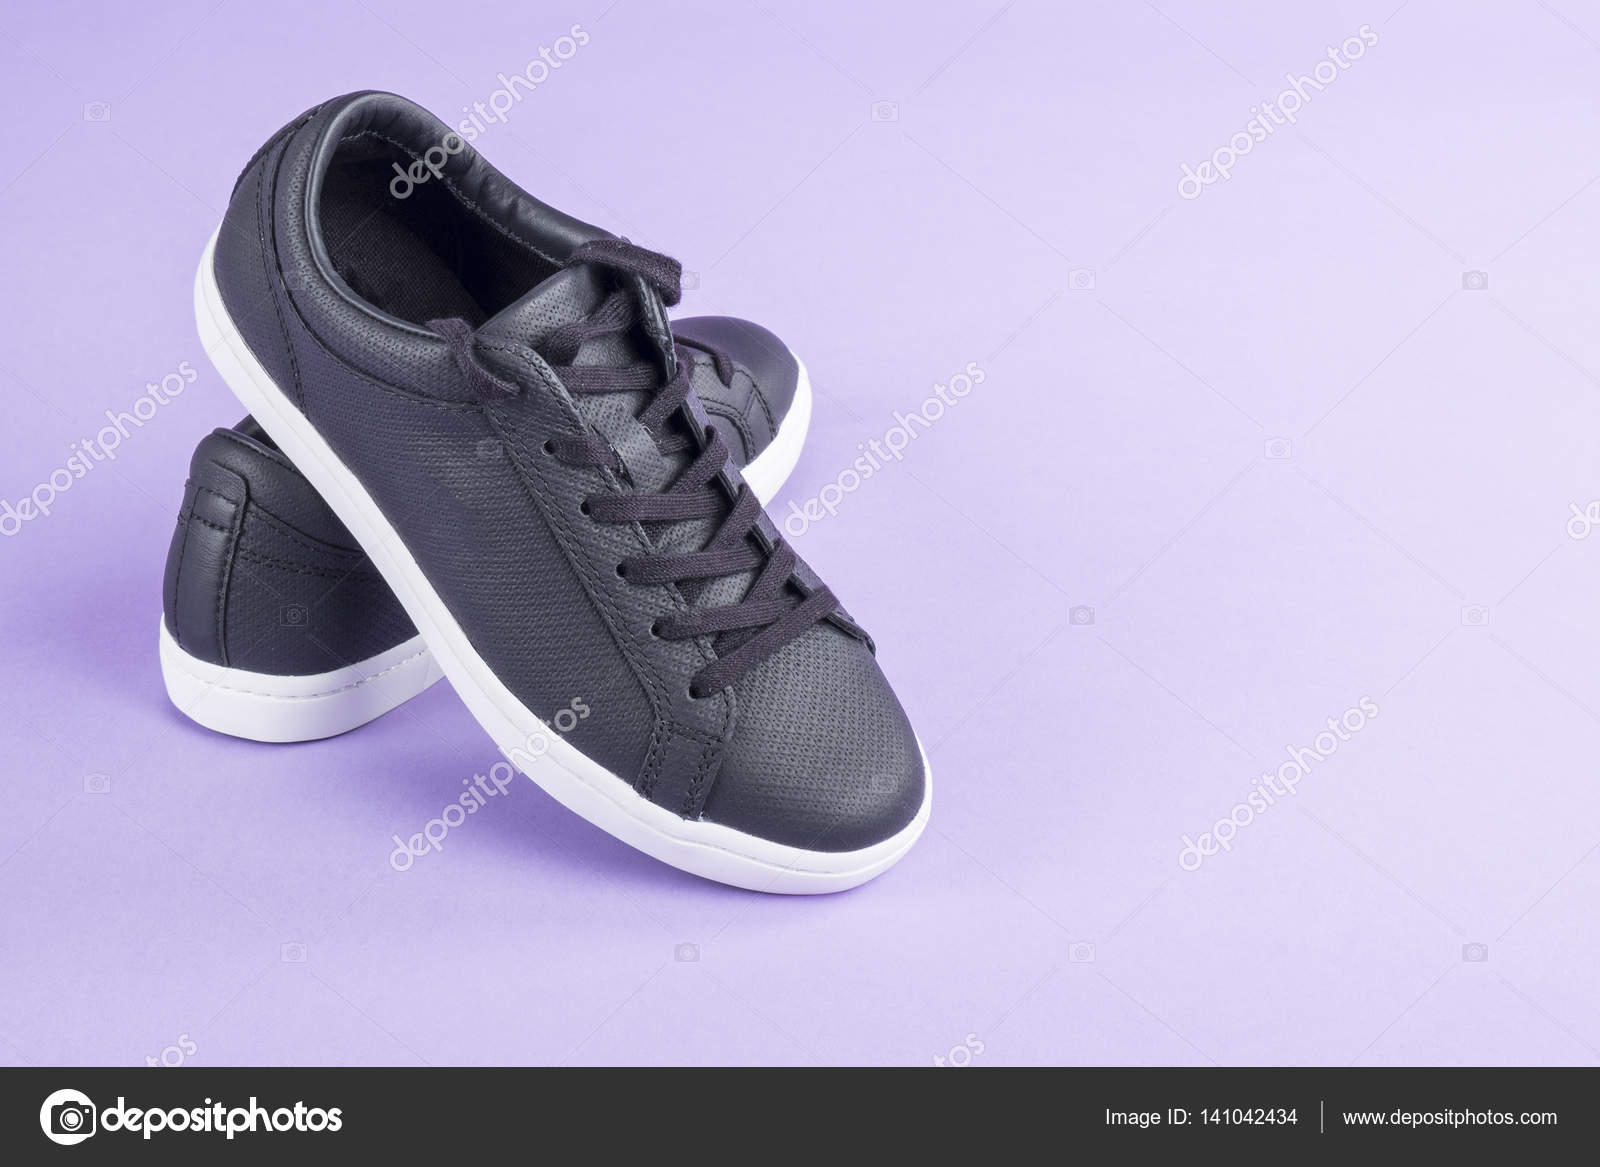 Sporty Black Leather Shoes on Purple